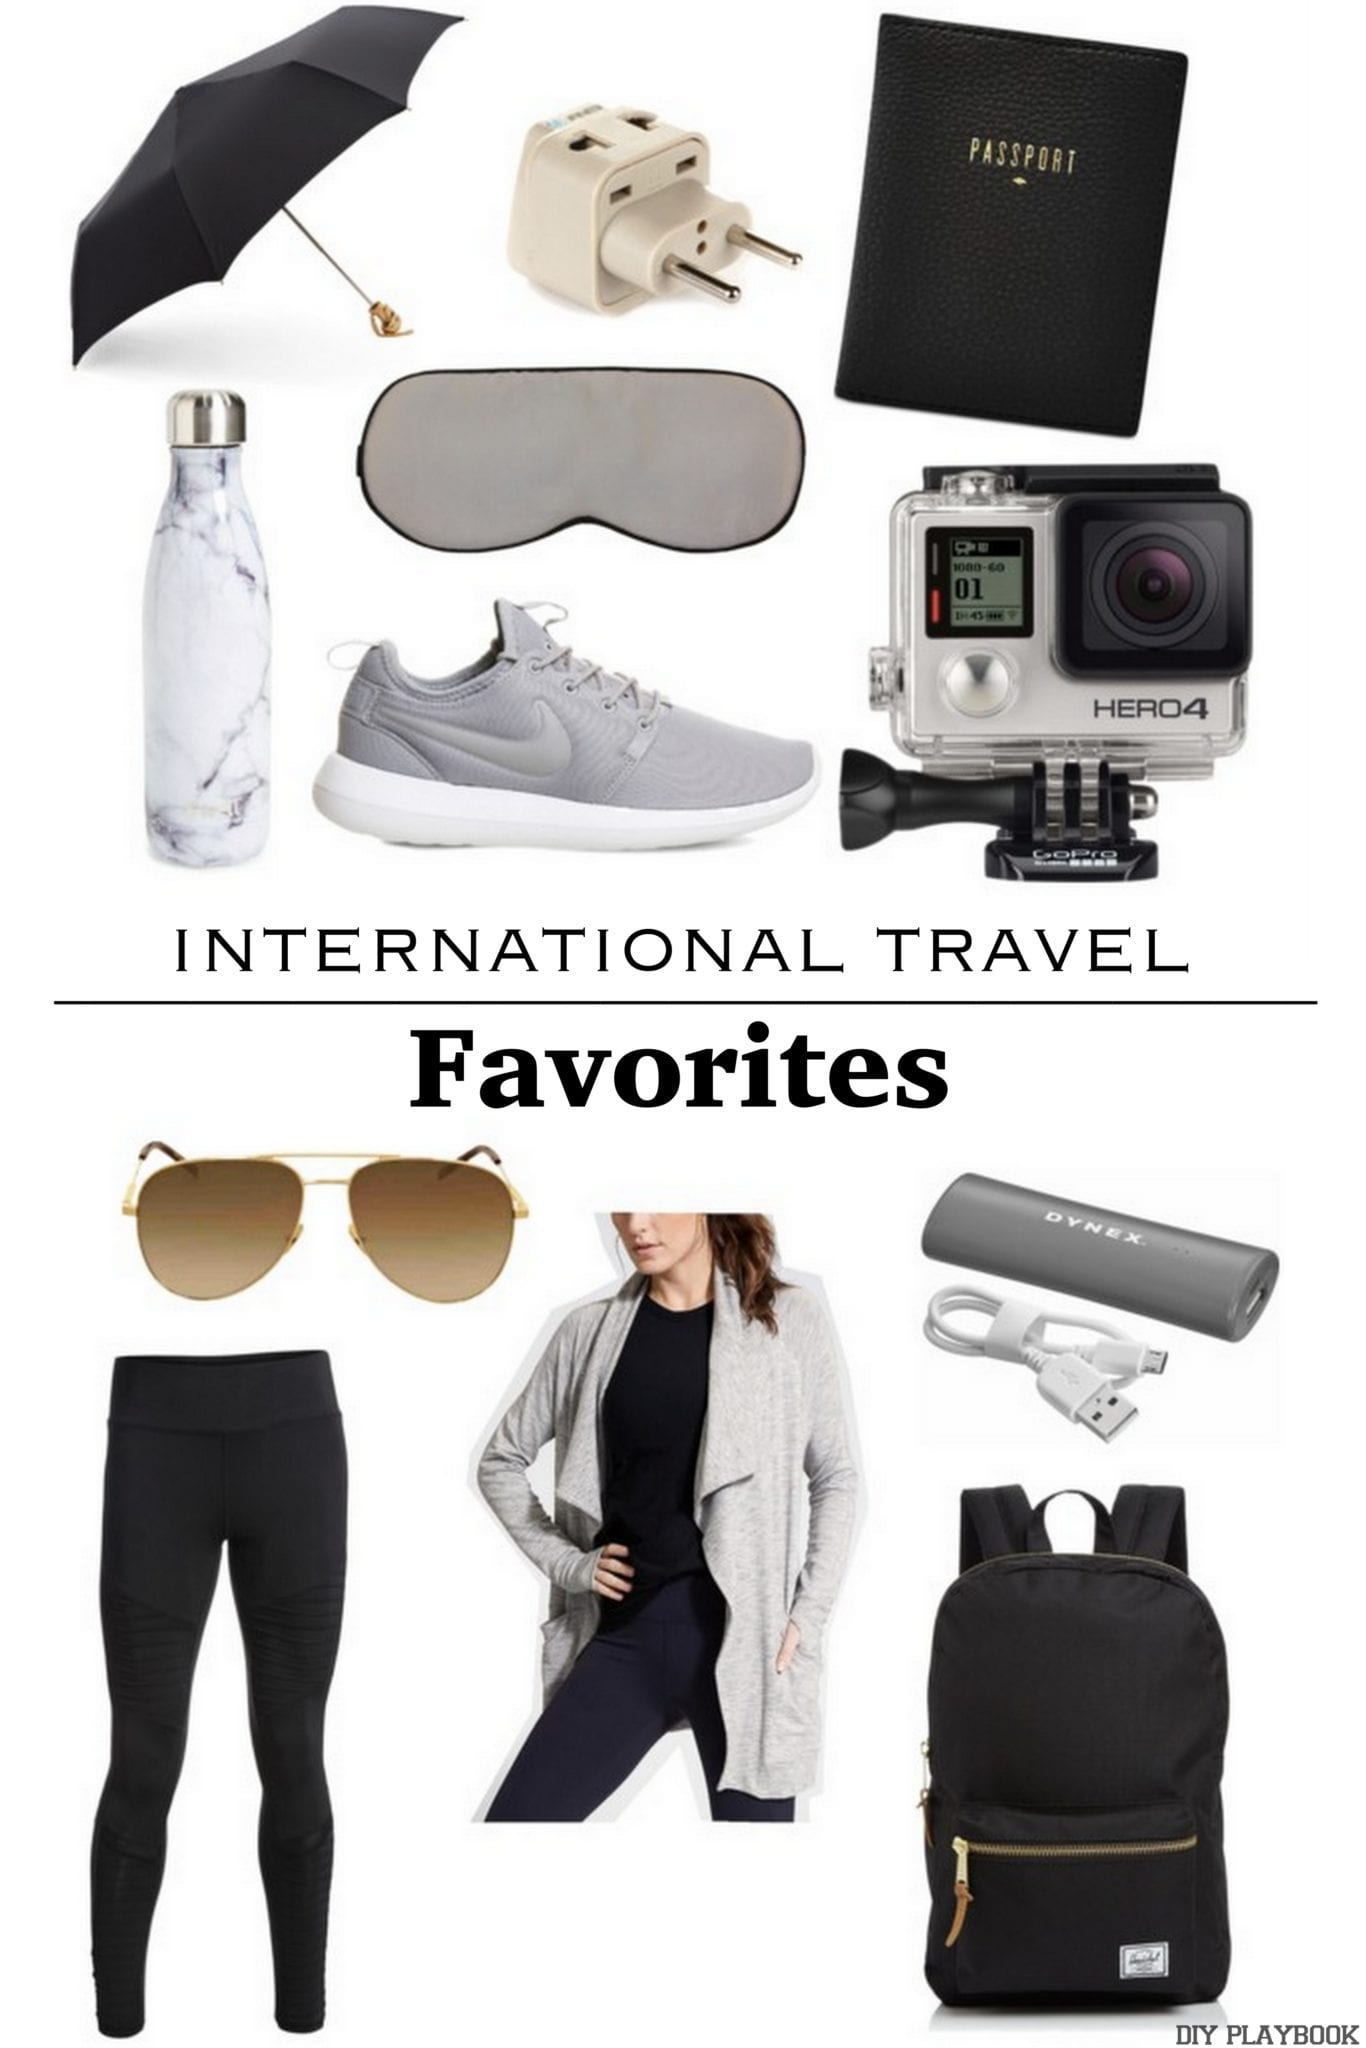 Our International Travel Favorites | DIY Playbook